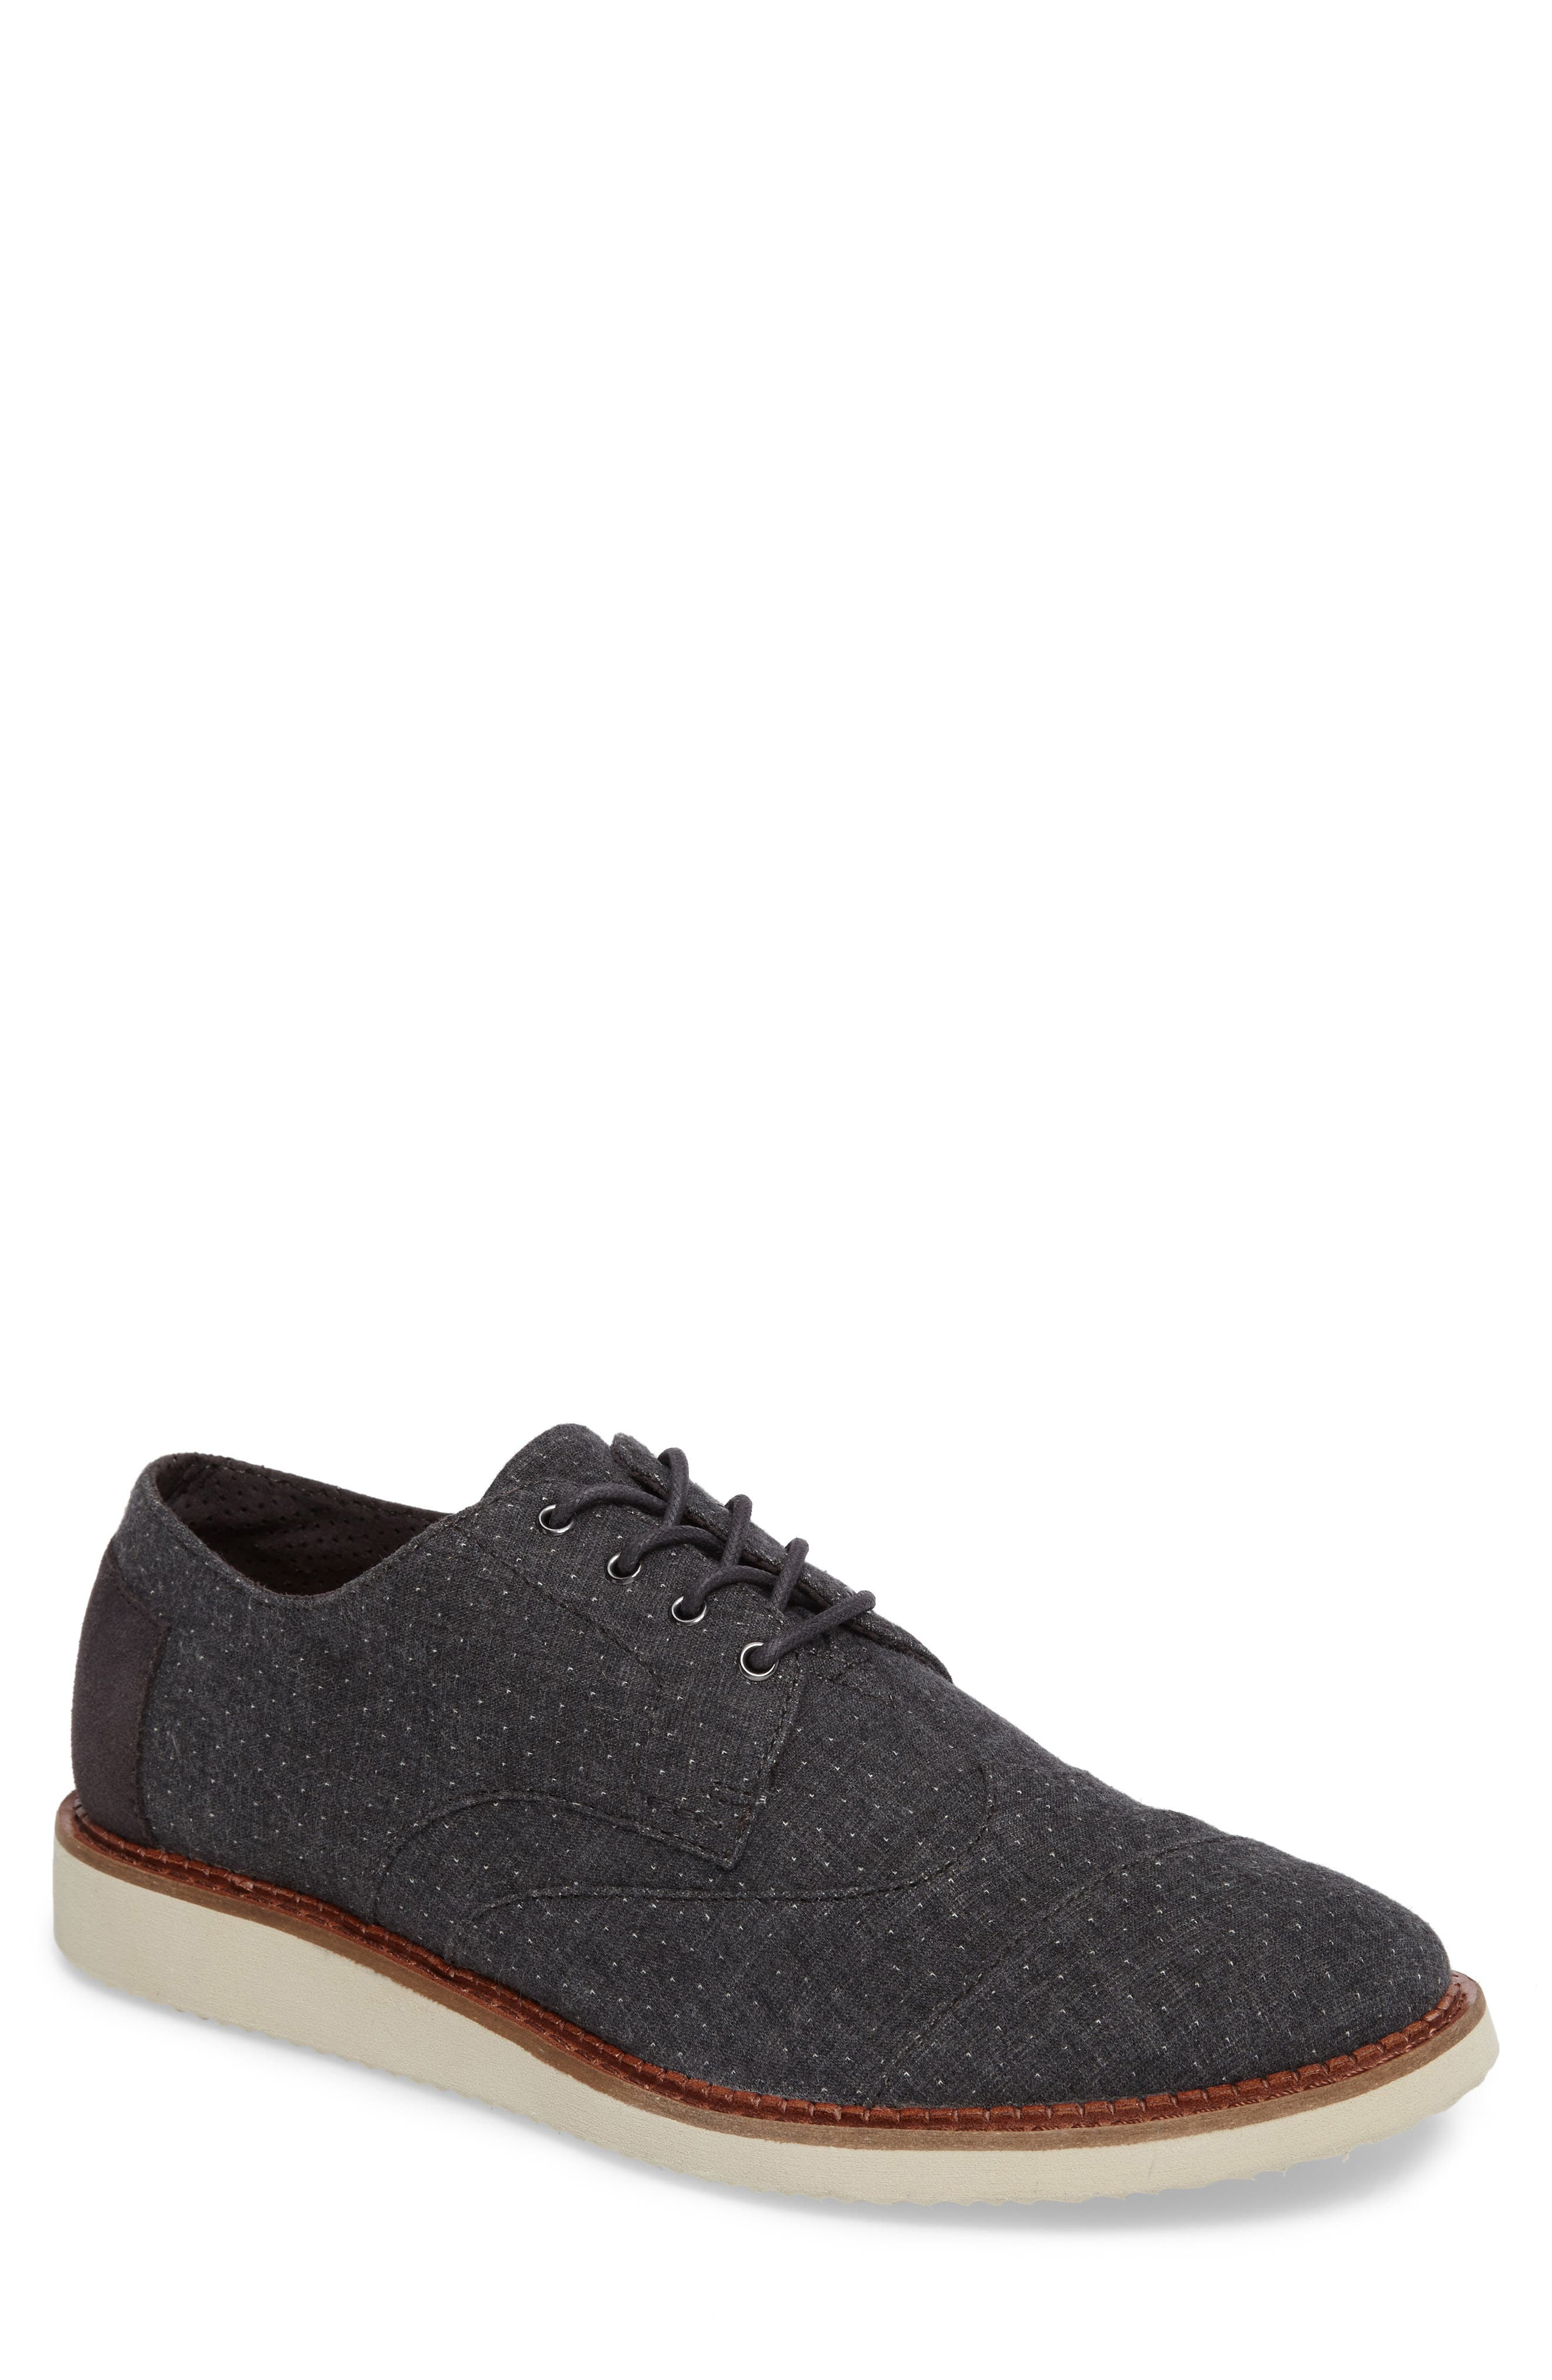 'Classic Brogue' Cotton Twill Derby,                             Main thumbnail 1, color,                             Grey